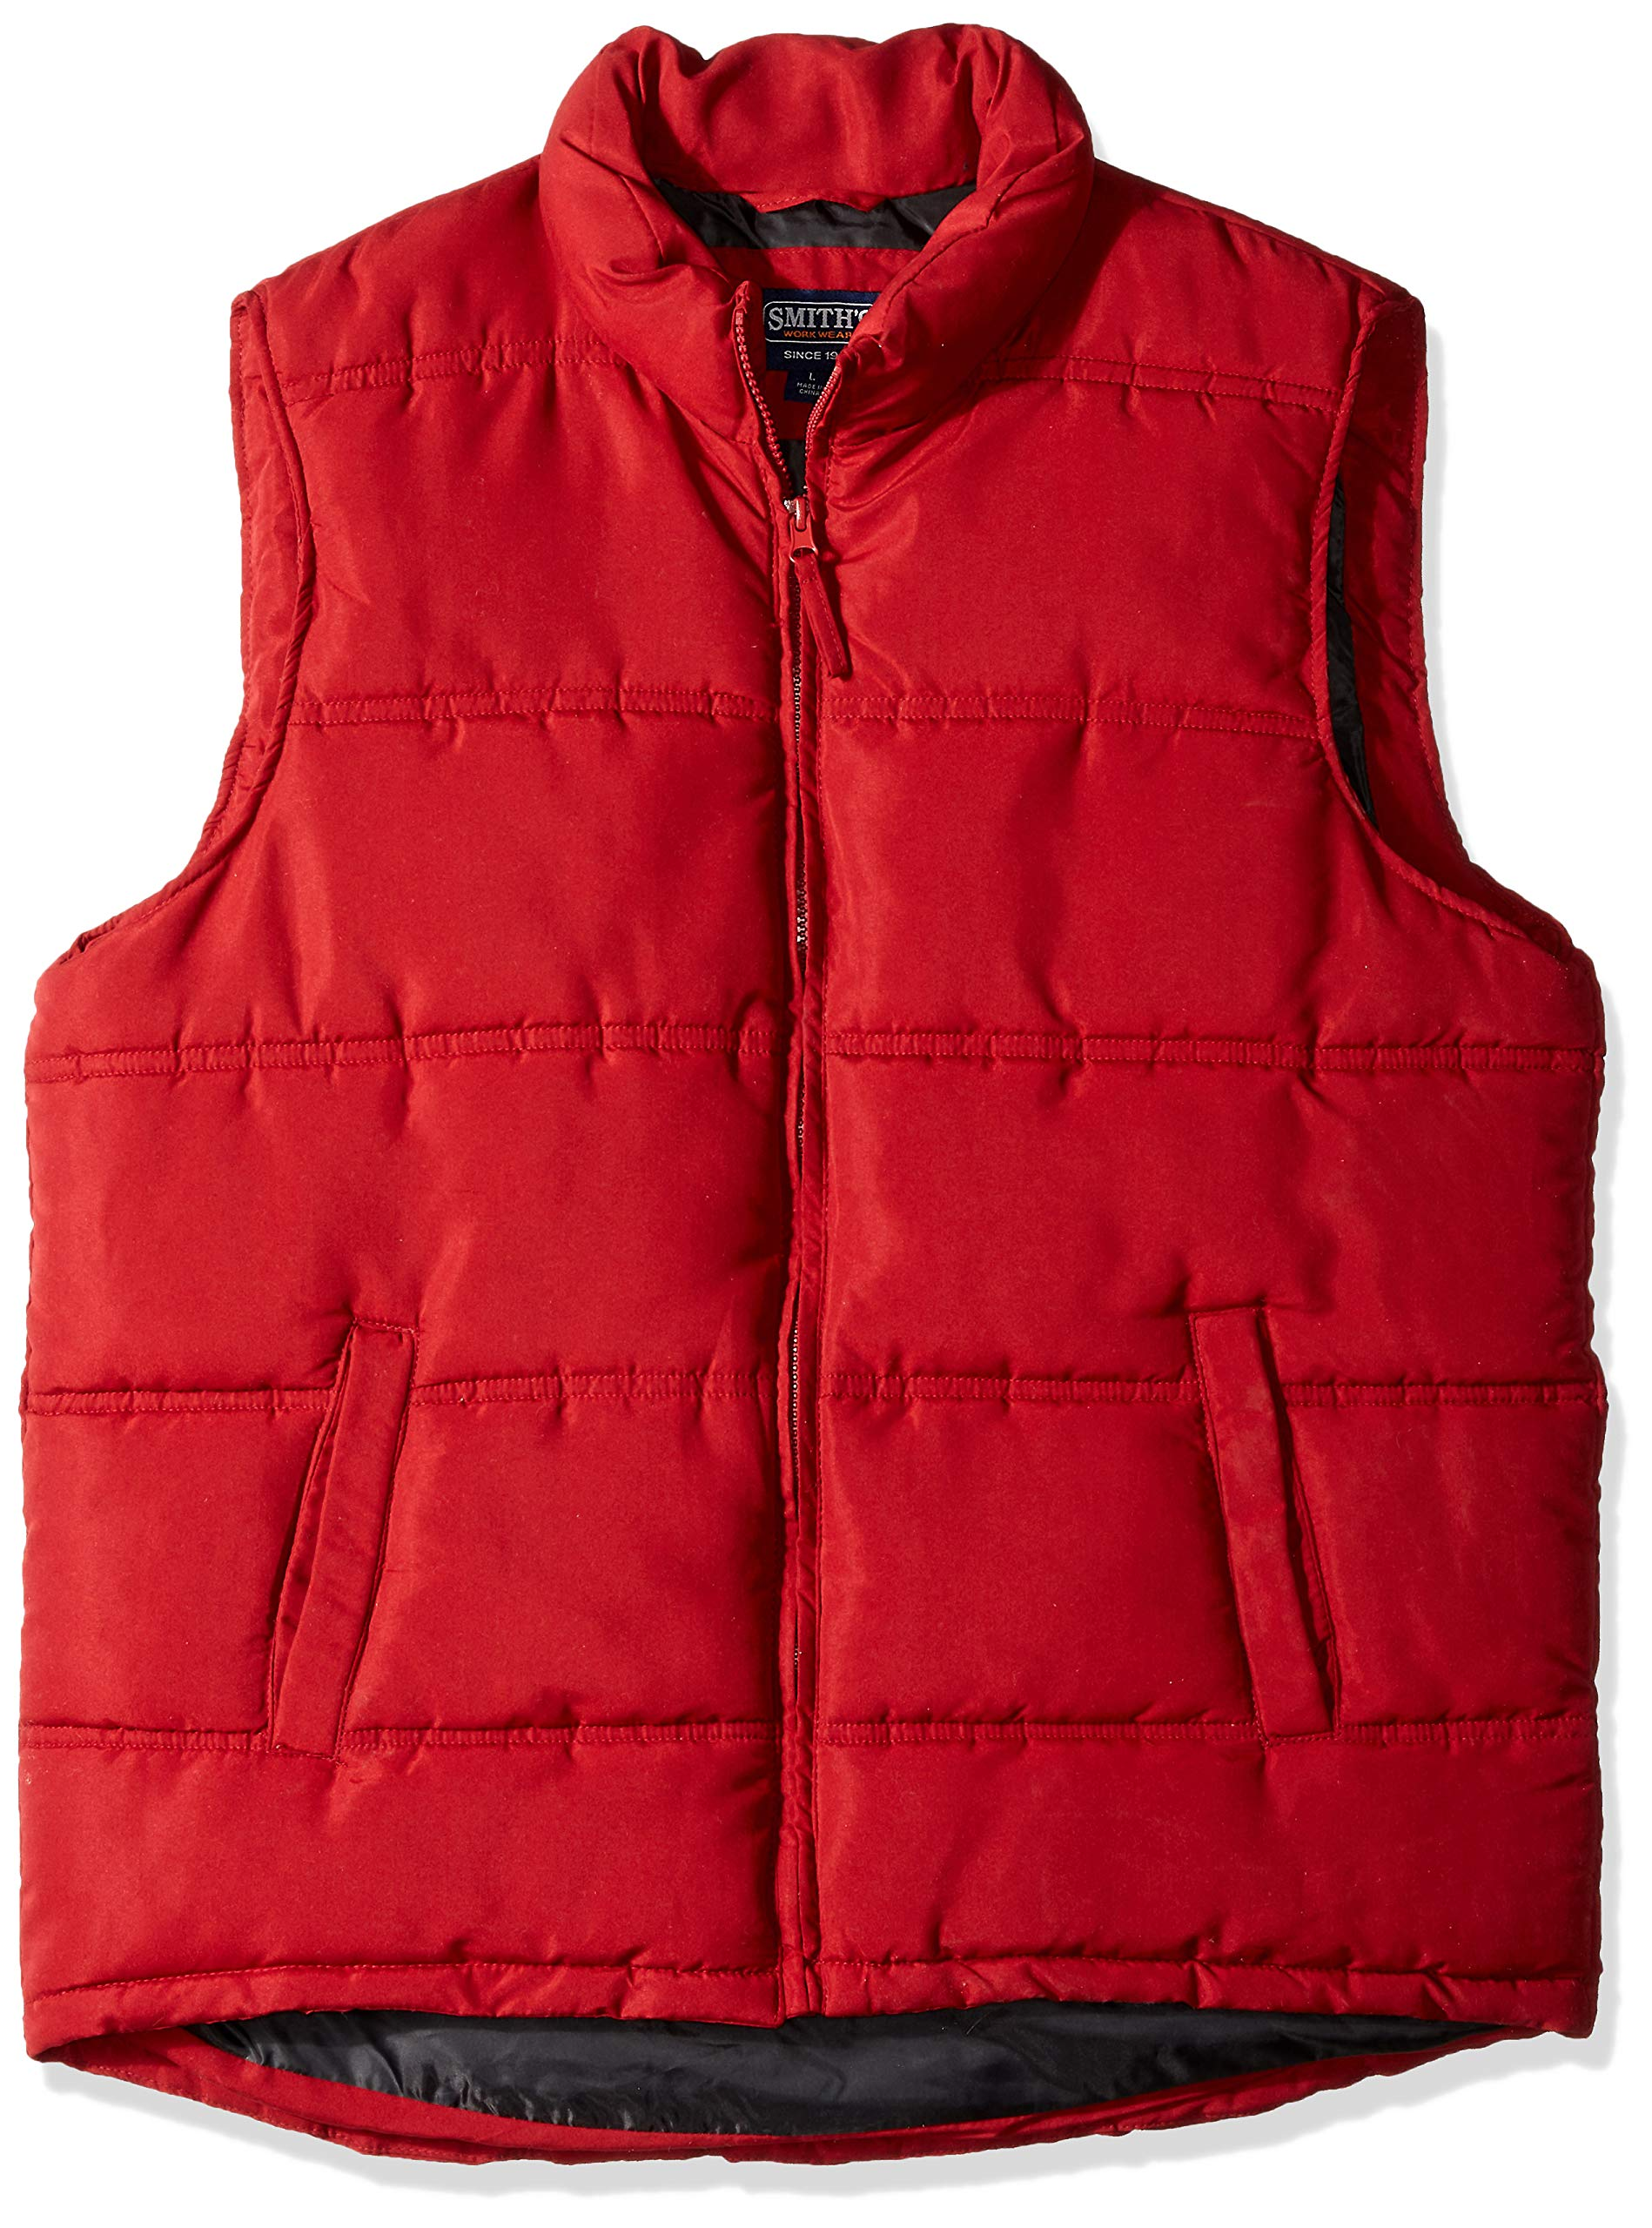 Smith's Workwear Men's Double Insulated Puffer Vest, Dark red, Large by Smith's Workwear